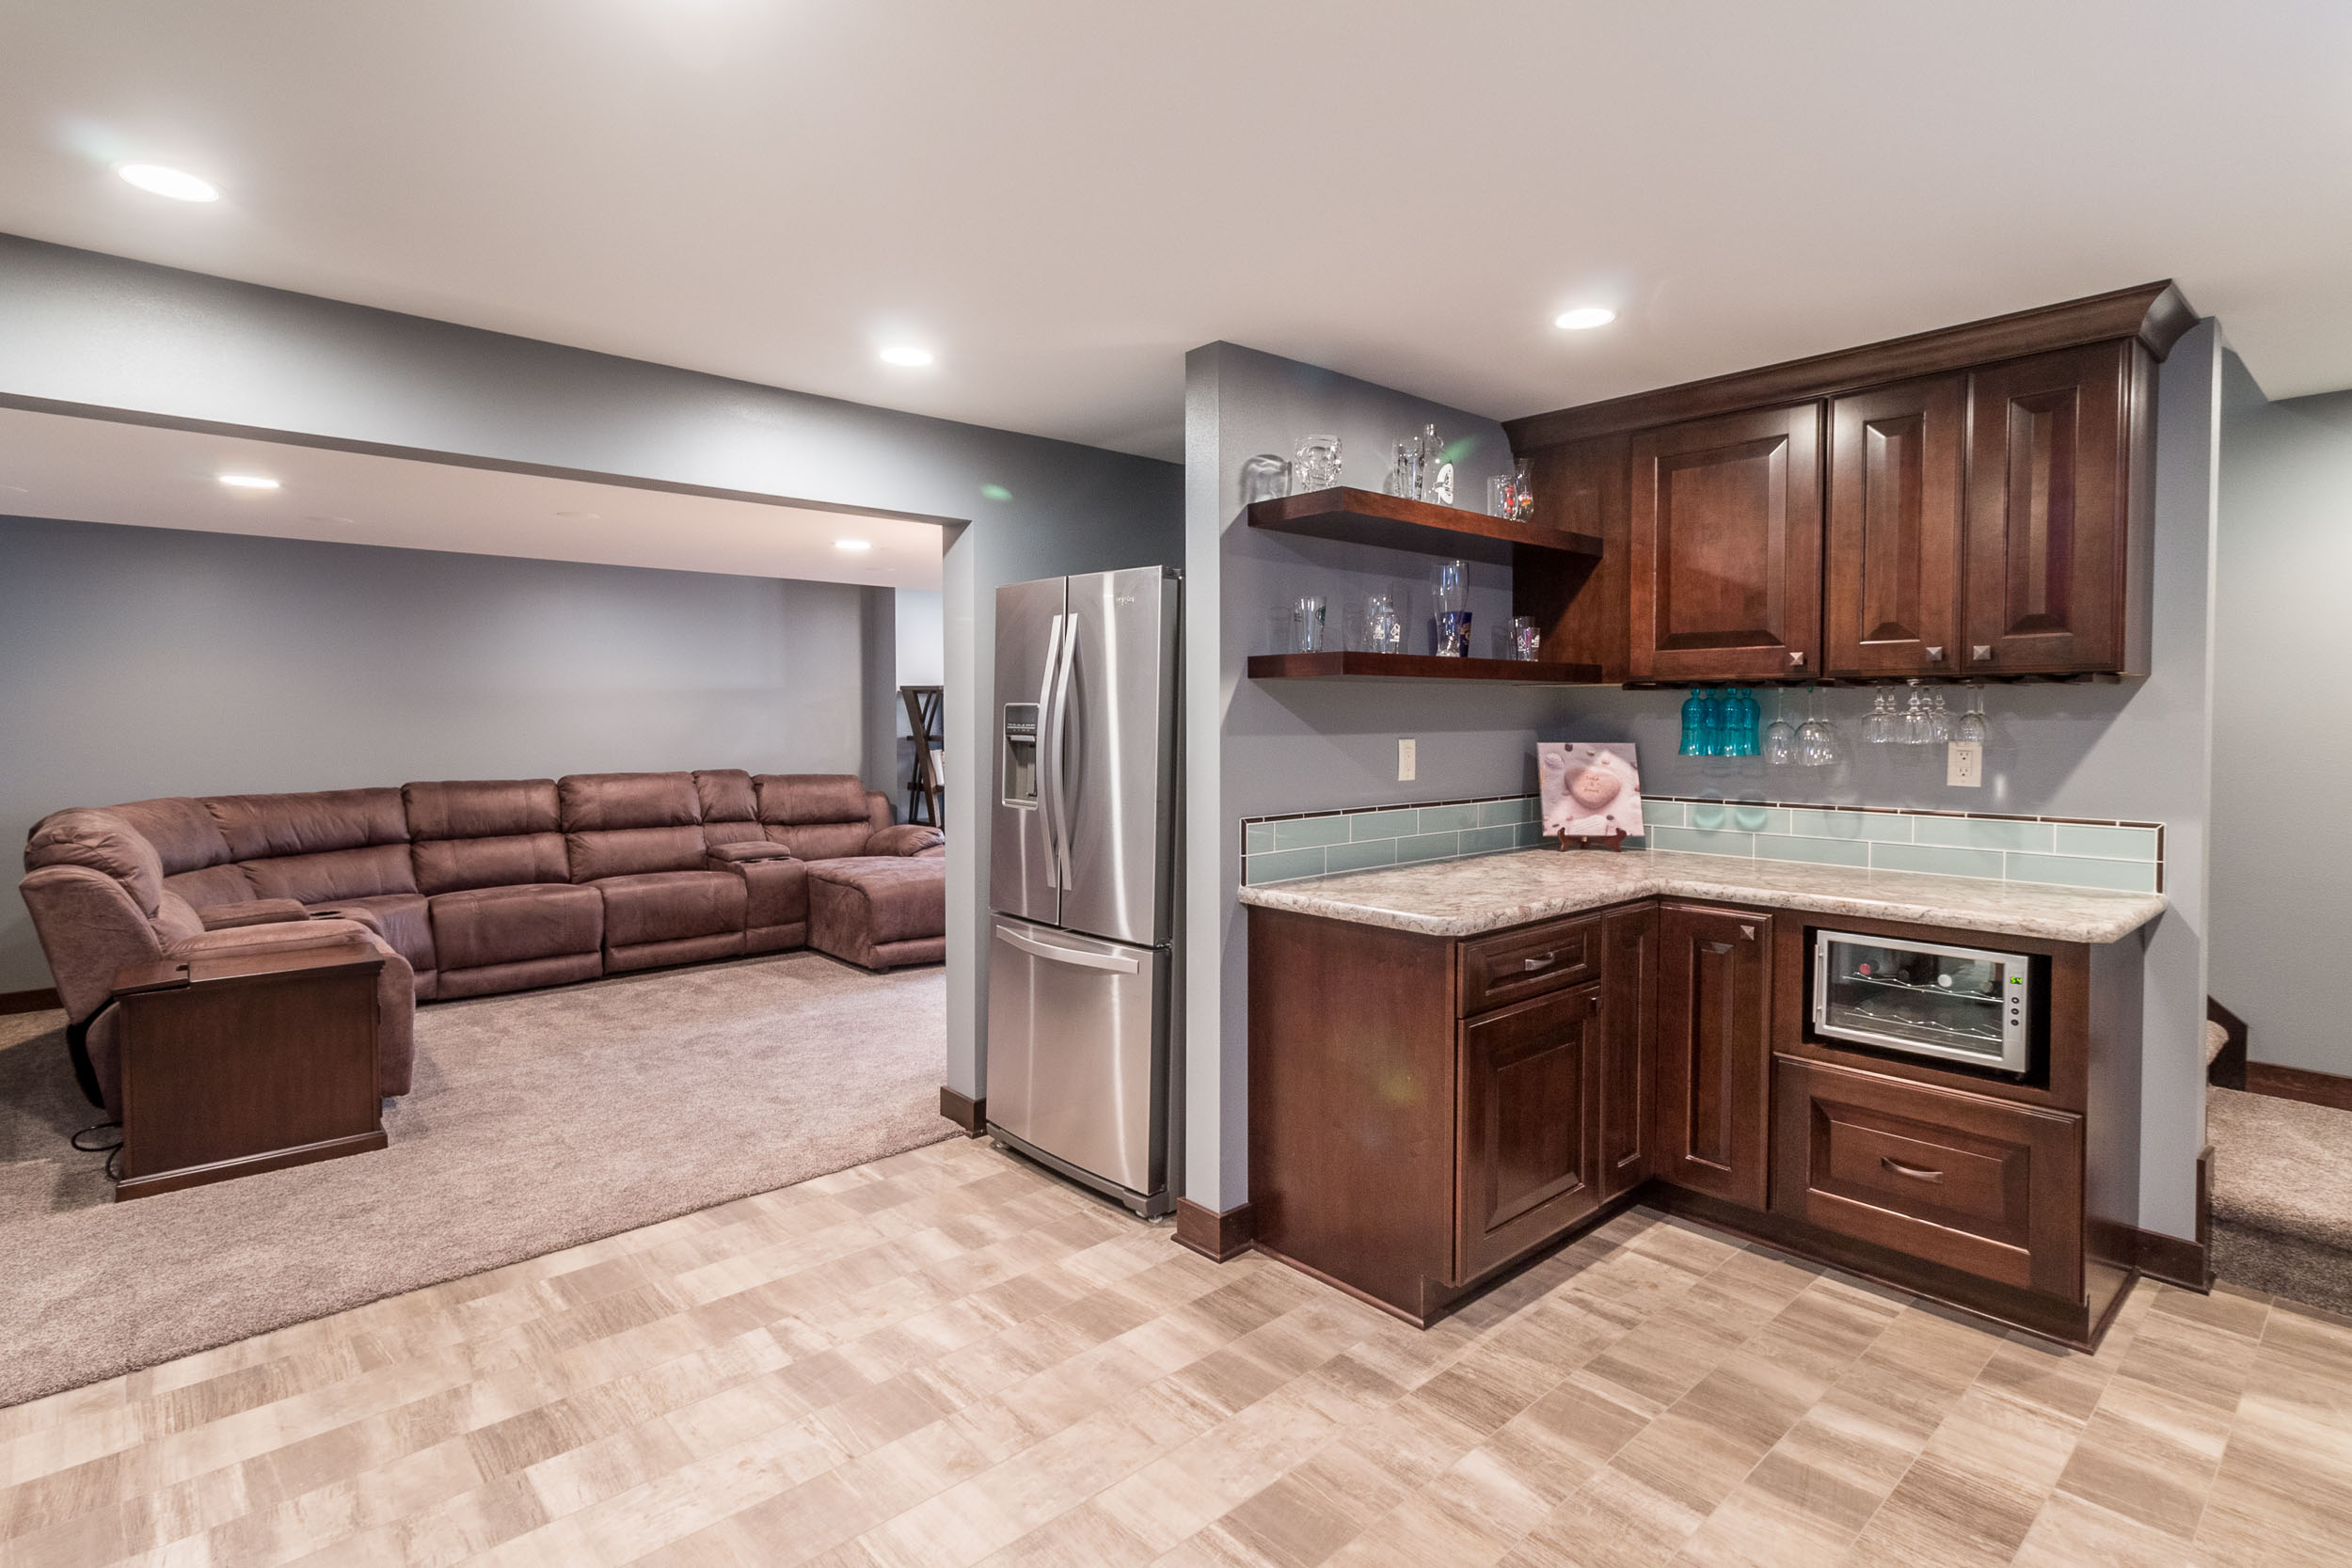 Basement Bar area with Wine Chiller and Refrigerator